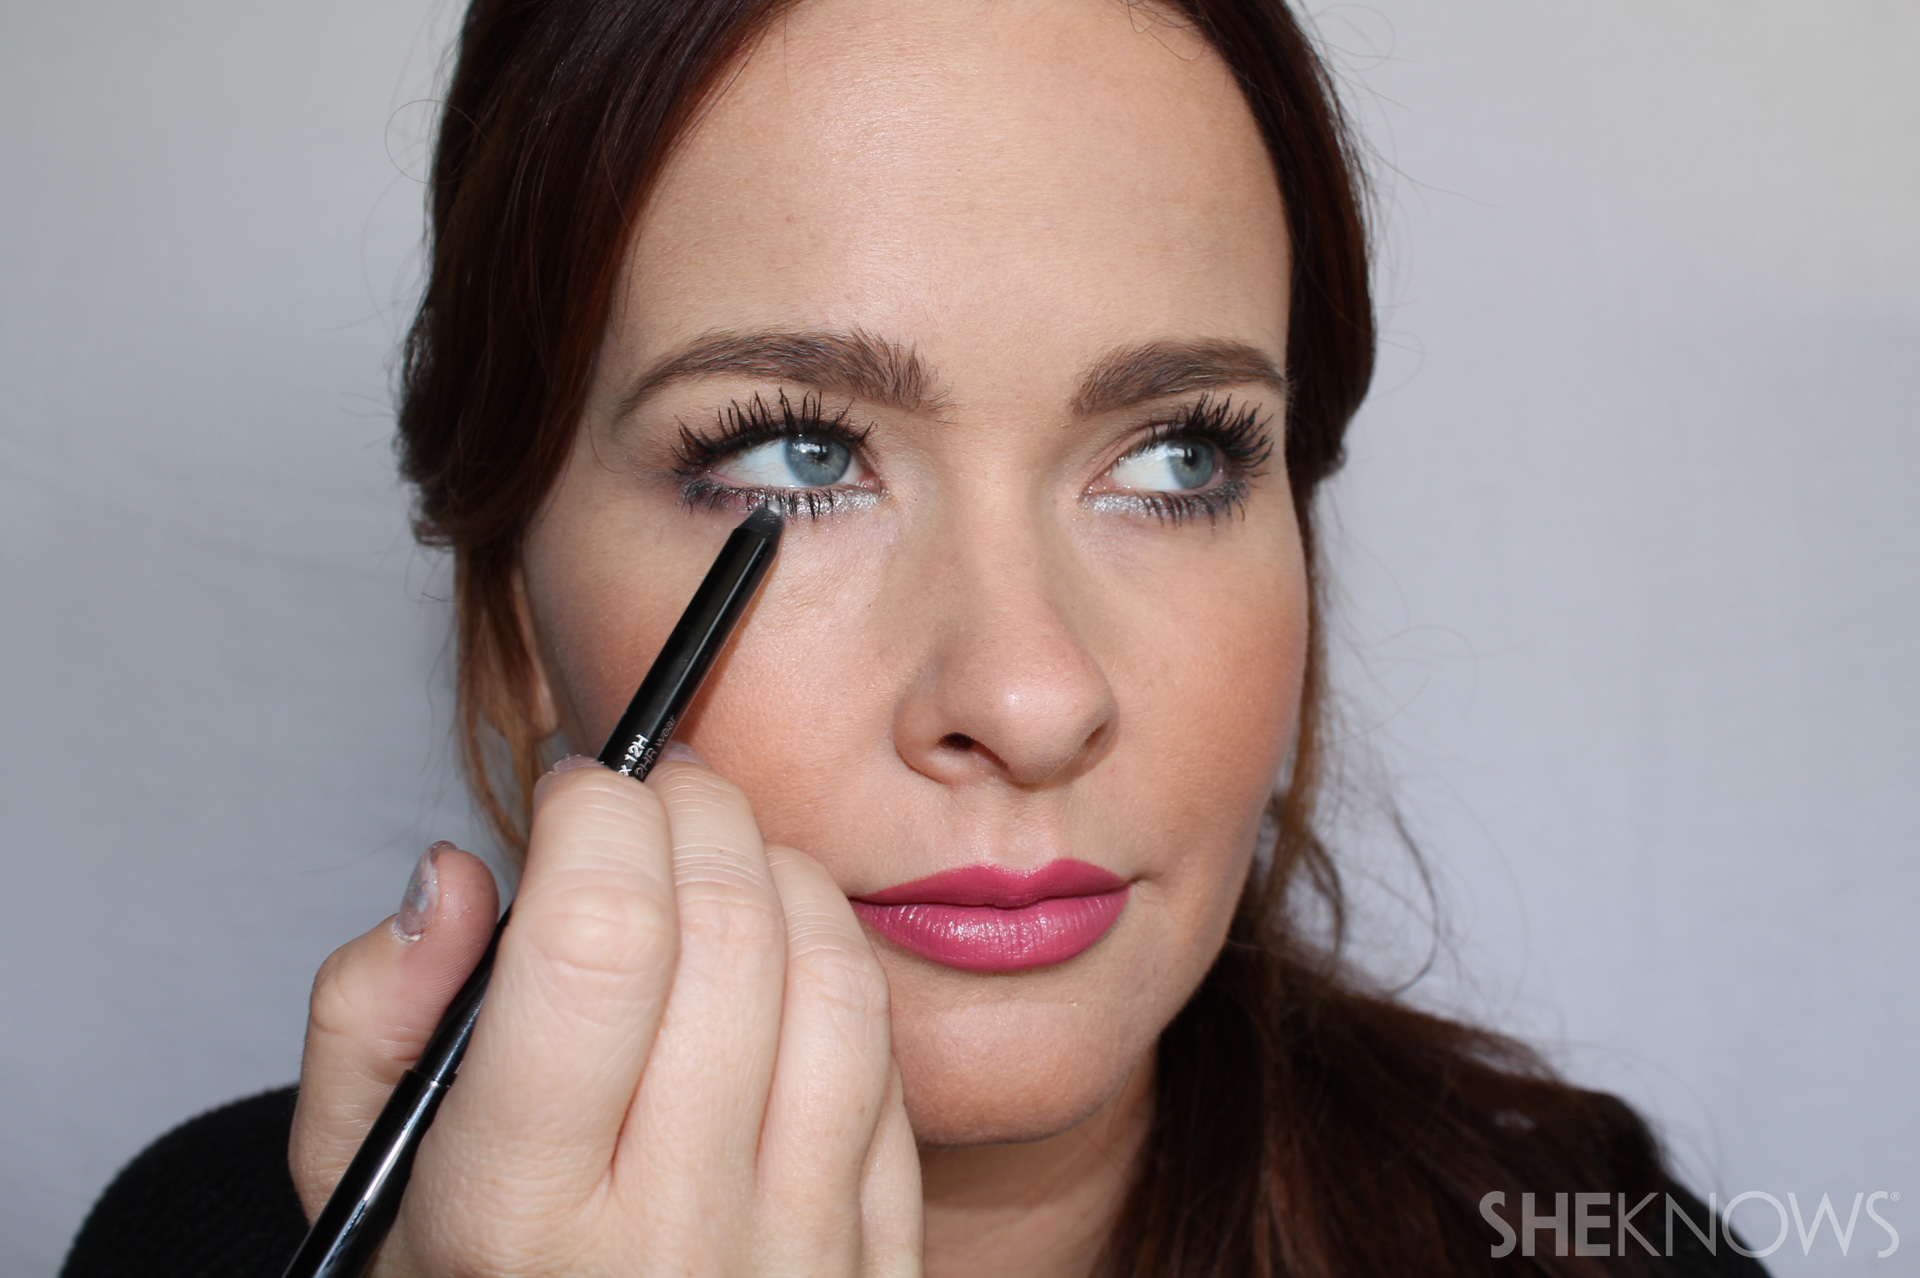 Undereye Step 1: Go over twice for intense color